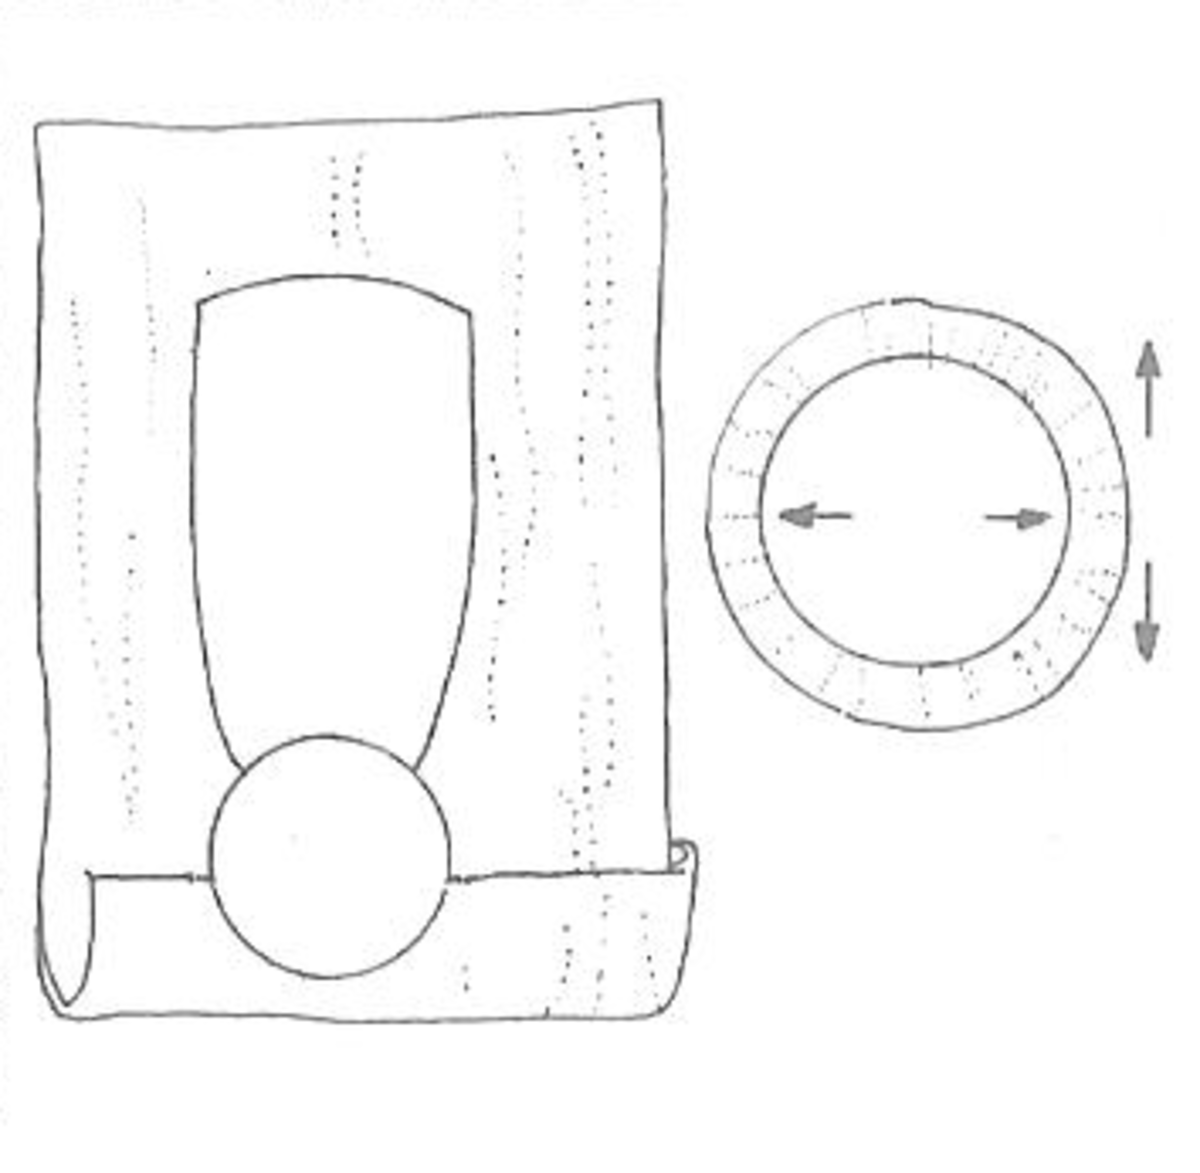 Figure 9 (left) & Figure 10 (right)